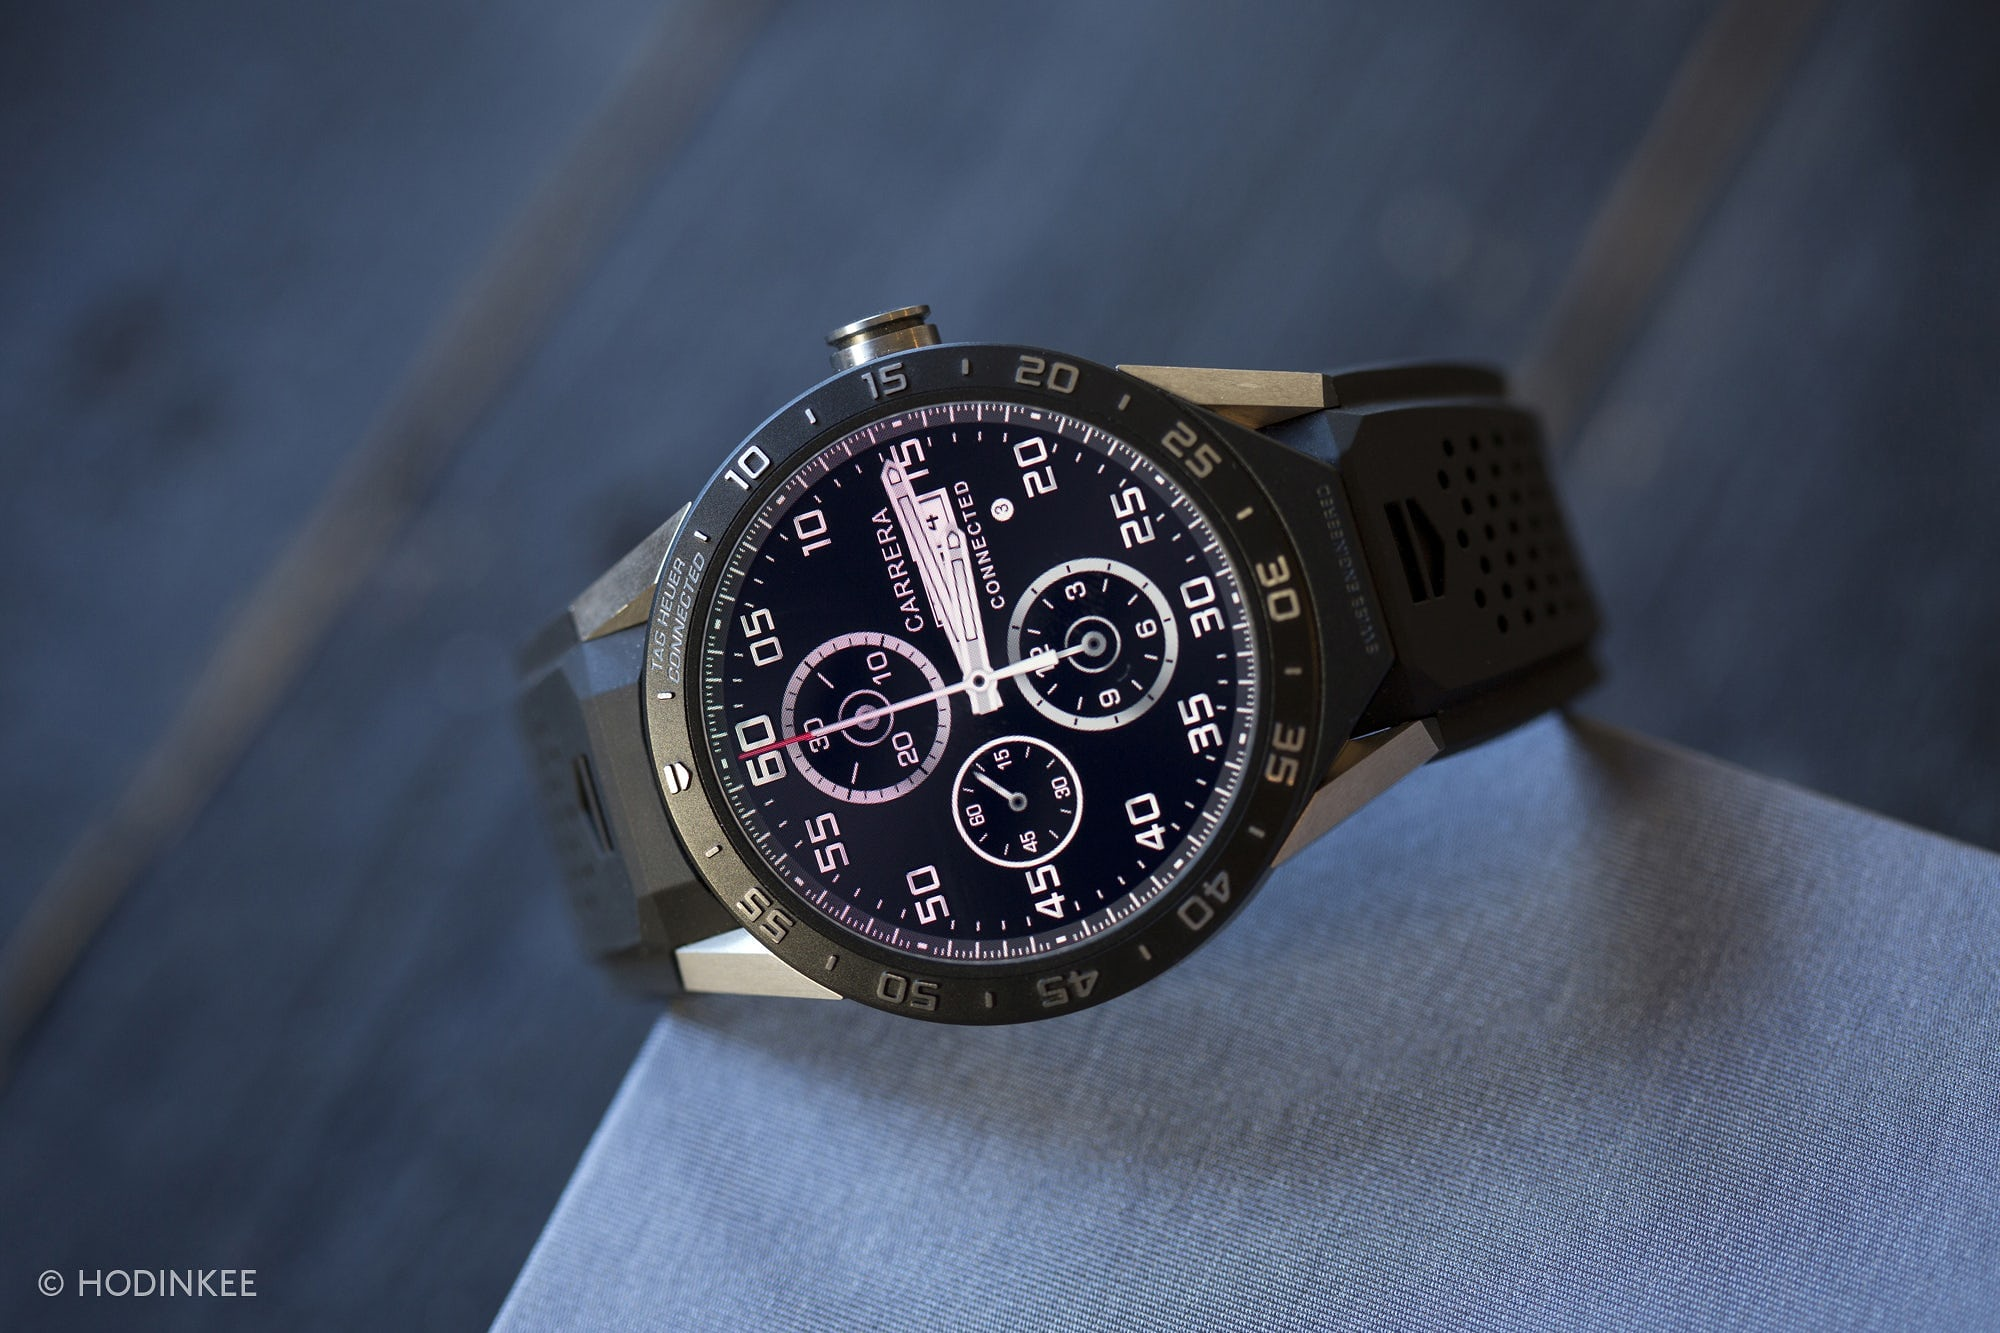 Business News: November's Swiss Watch Exports Show That China Is Once Again Red Hot Business News: November's Swiss Watch Exports Show That China Is Once Again Red Hot carrera